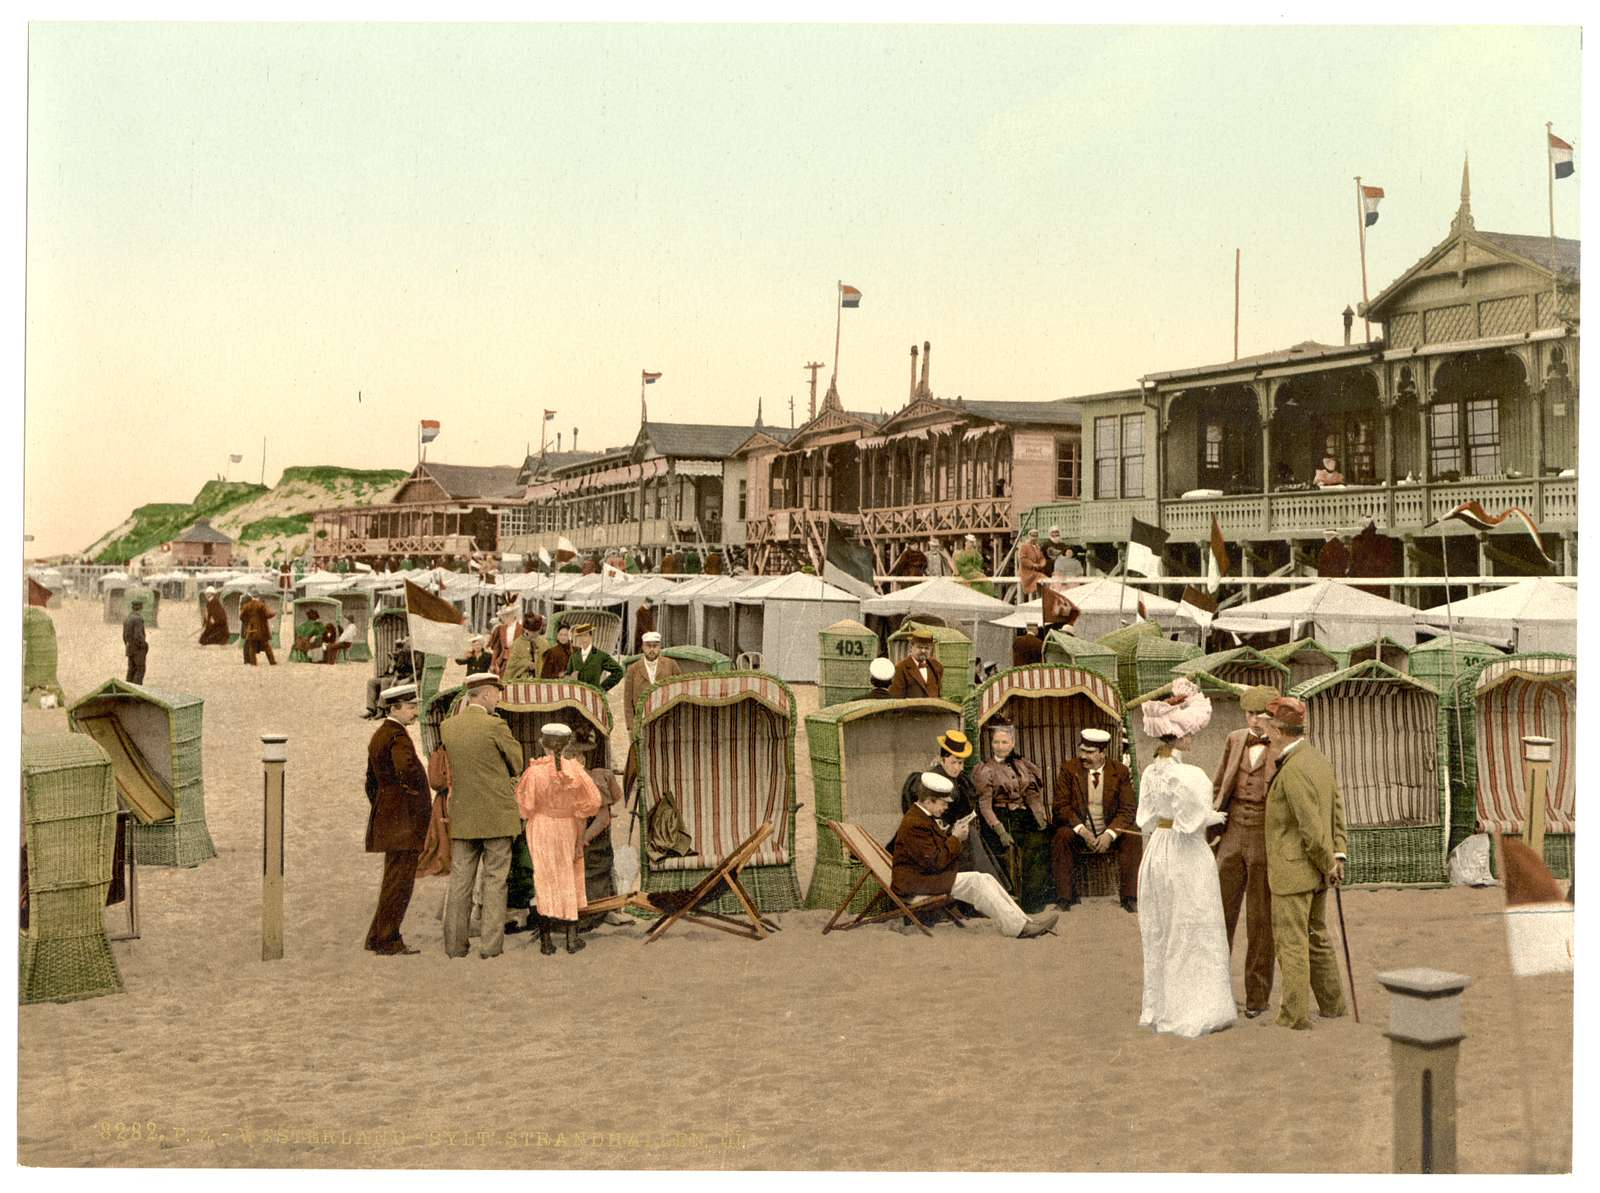 [The chalets, III., Westerland, Sylt, Schleswig-Holstein, Germany]